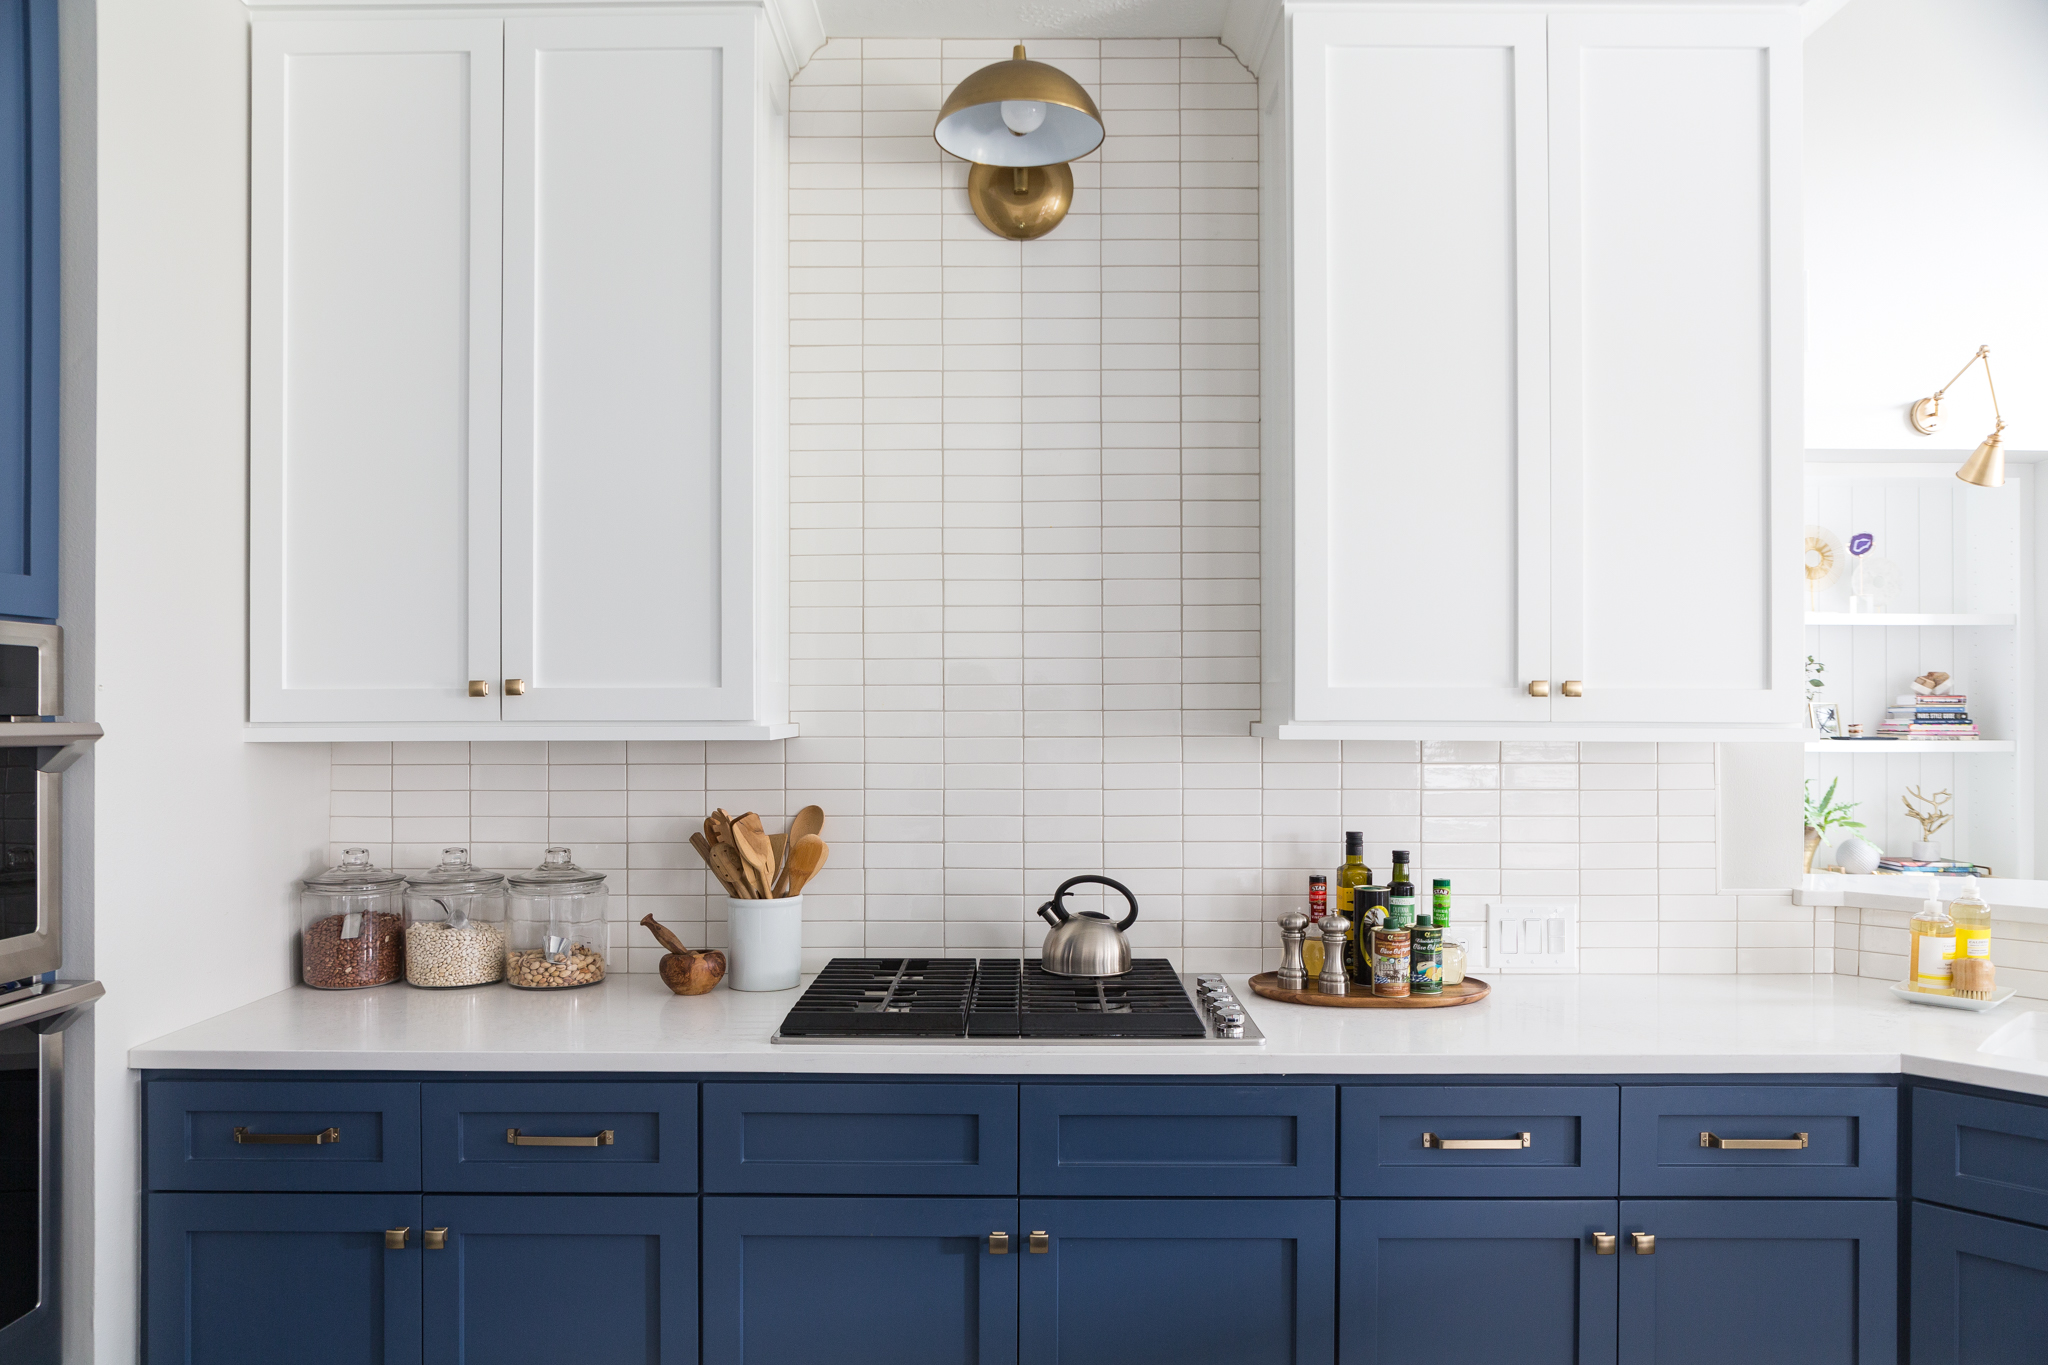 BEFORE AND AFTER - A navy and white kitchen remodel | Carla Aston, Designer | Colleen Scott, Photographer #kitchenremodel #navyandwhitekitchen #kitchenideas